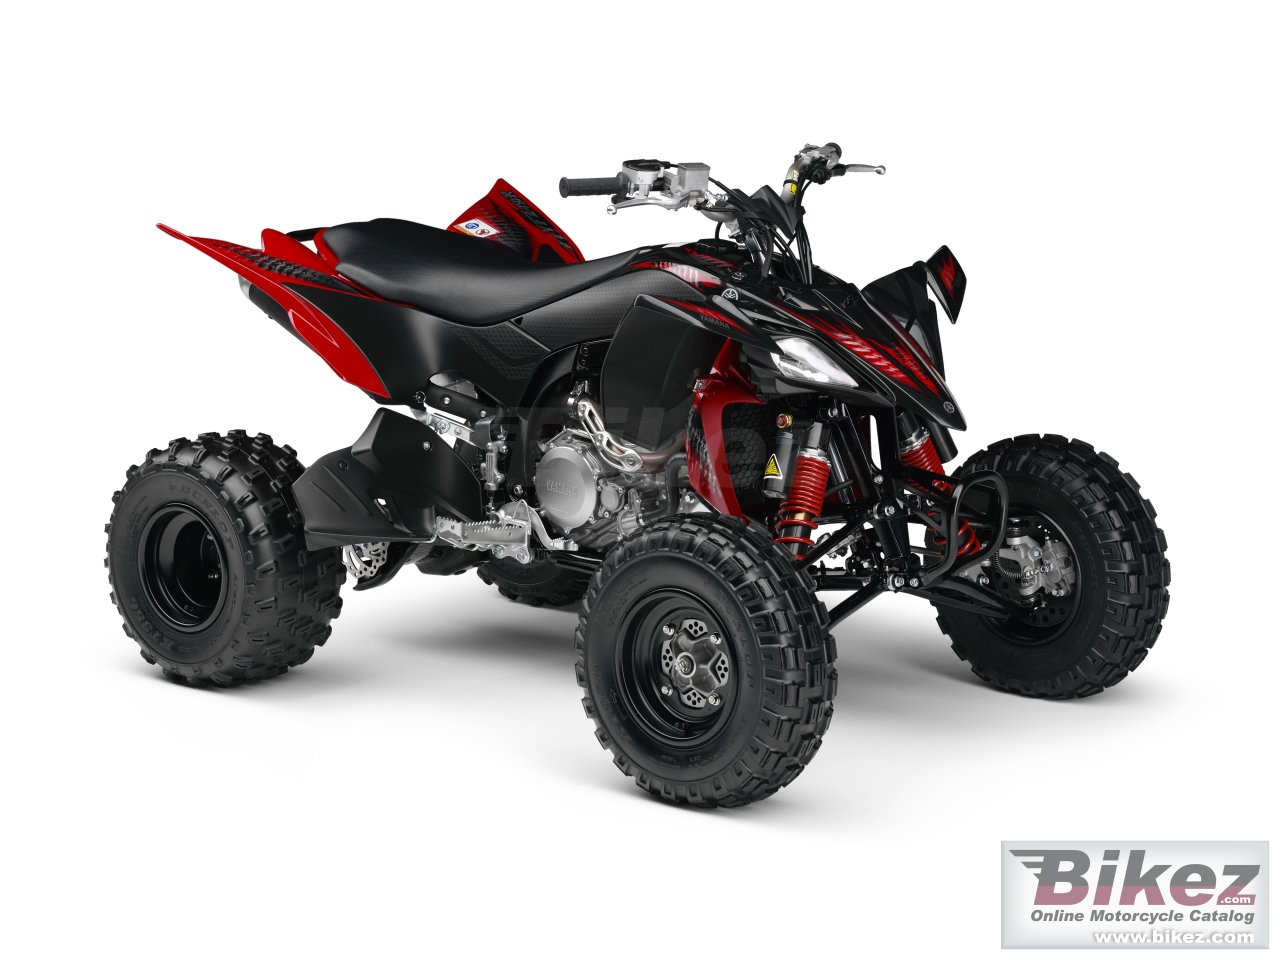 Big Yamaha yfz450r special edition picture and wallpaper from Bikez.com